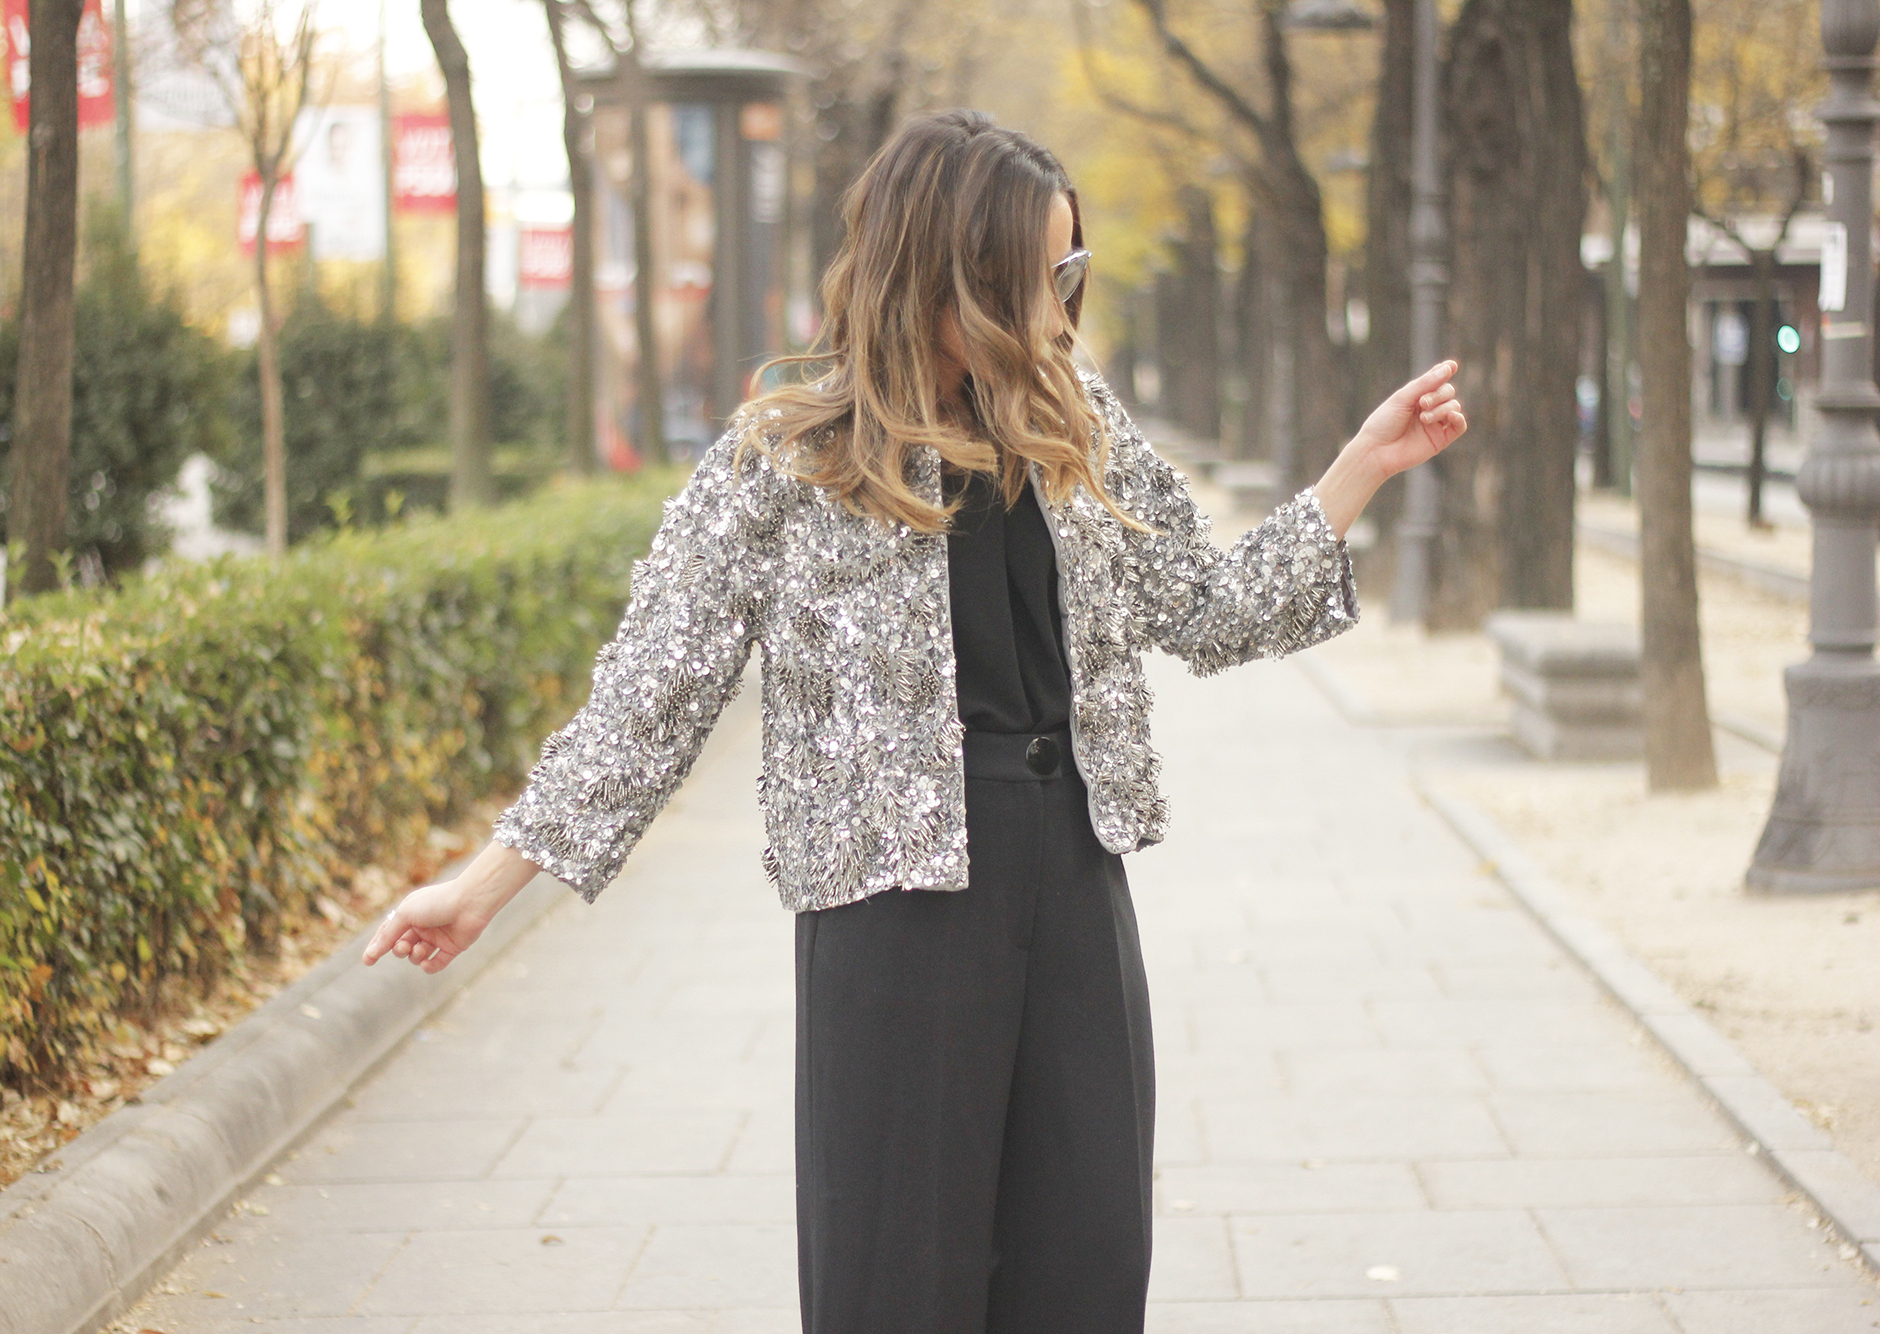 sequined jacket cropped trousers winter outfit black heels accessories streetstyle19